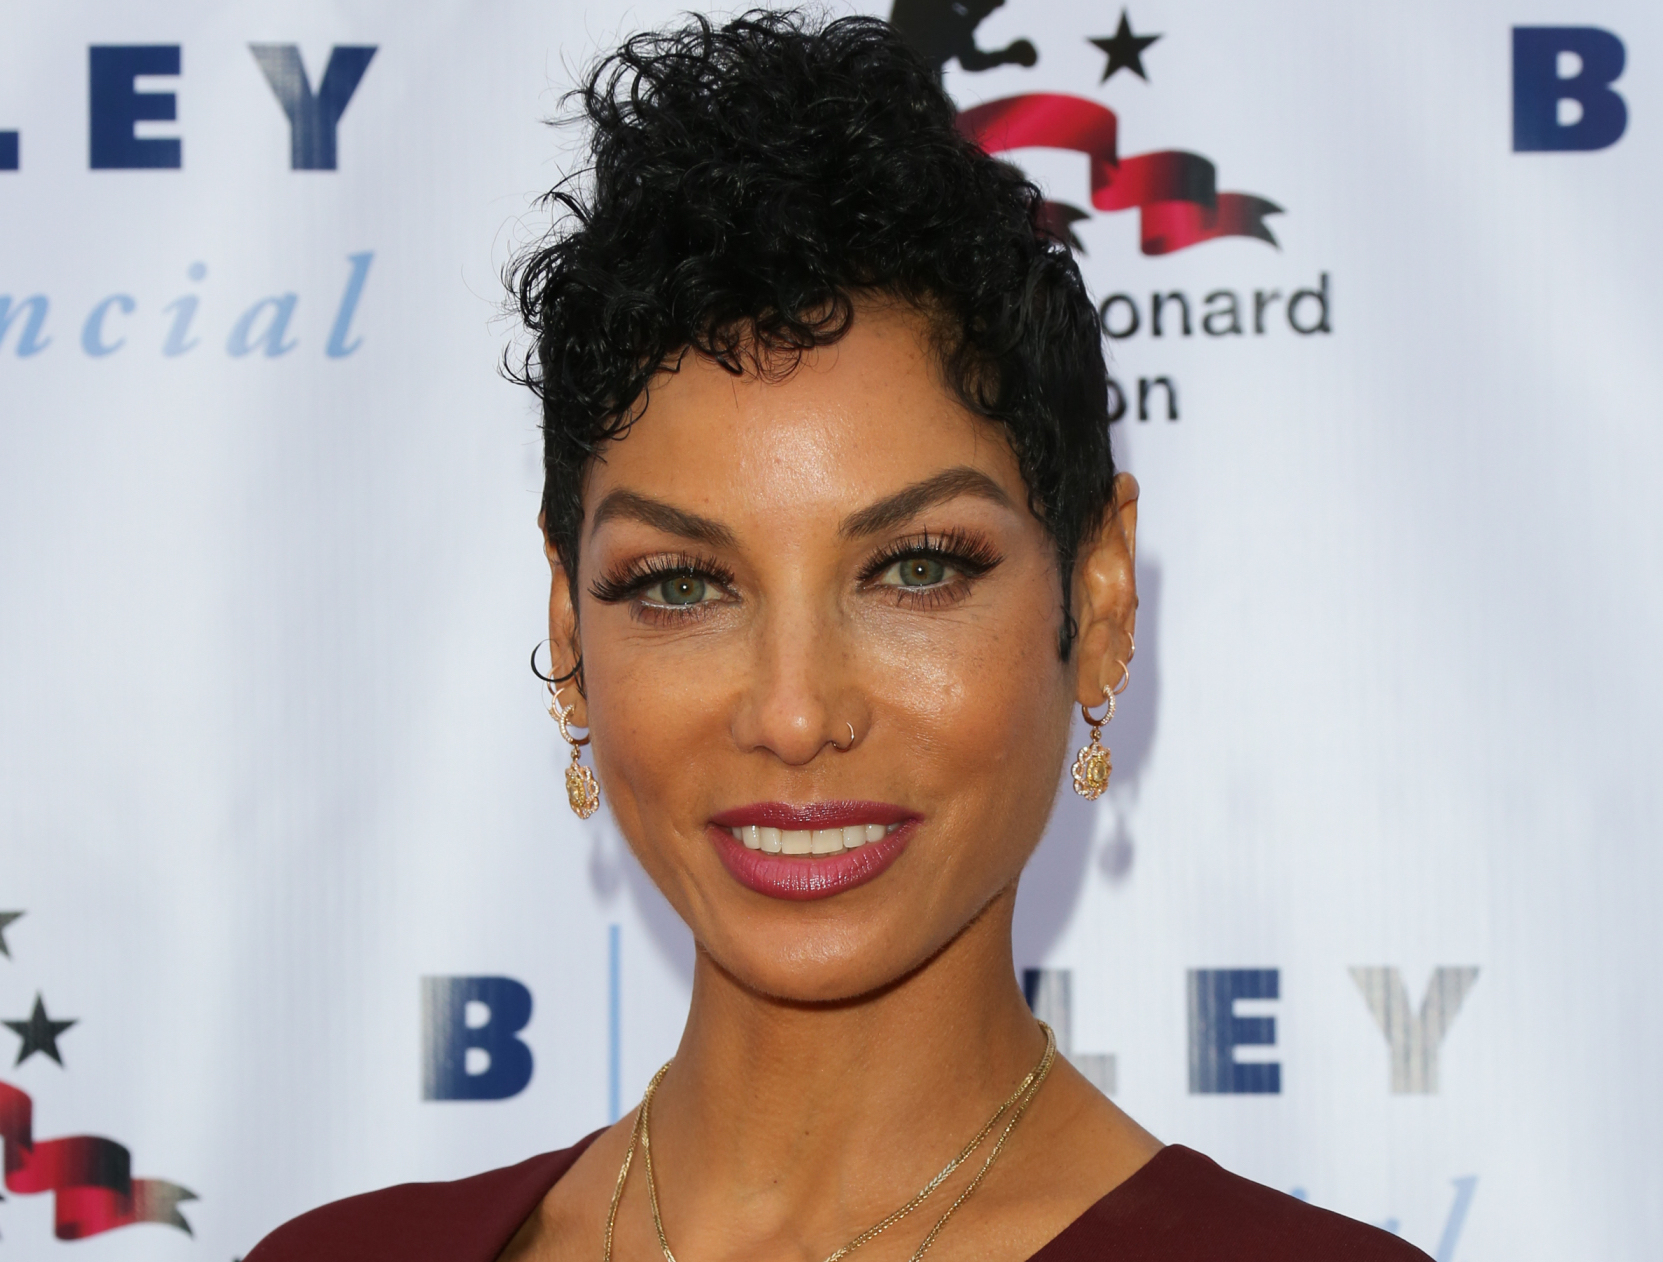 """HOLLYWOOD, CA - MAY 25: Model / TV Personality Nicole Mitchell Murphy attends the 7th annual """"Big Fighters, Big Cause Charity Boxing Night"""" benefiting the Sugar Ray Leonard Foundation at The Ray Dolby Ballroom at Hollywood & Highland Center on May 25, 2016 in Hollywood, California. (Photo by Paul Archuleta/FilmMagic)"""